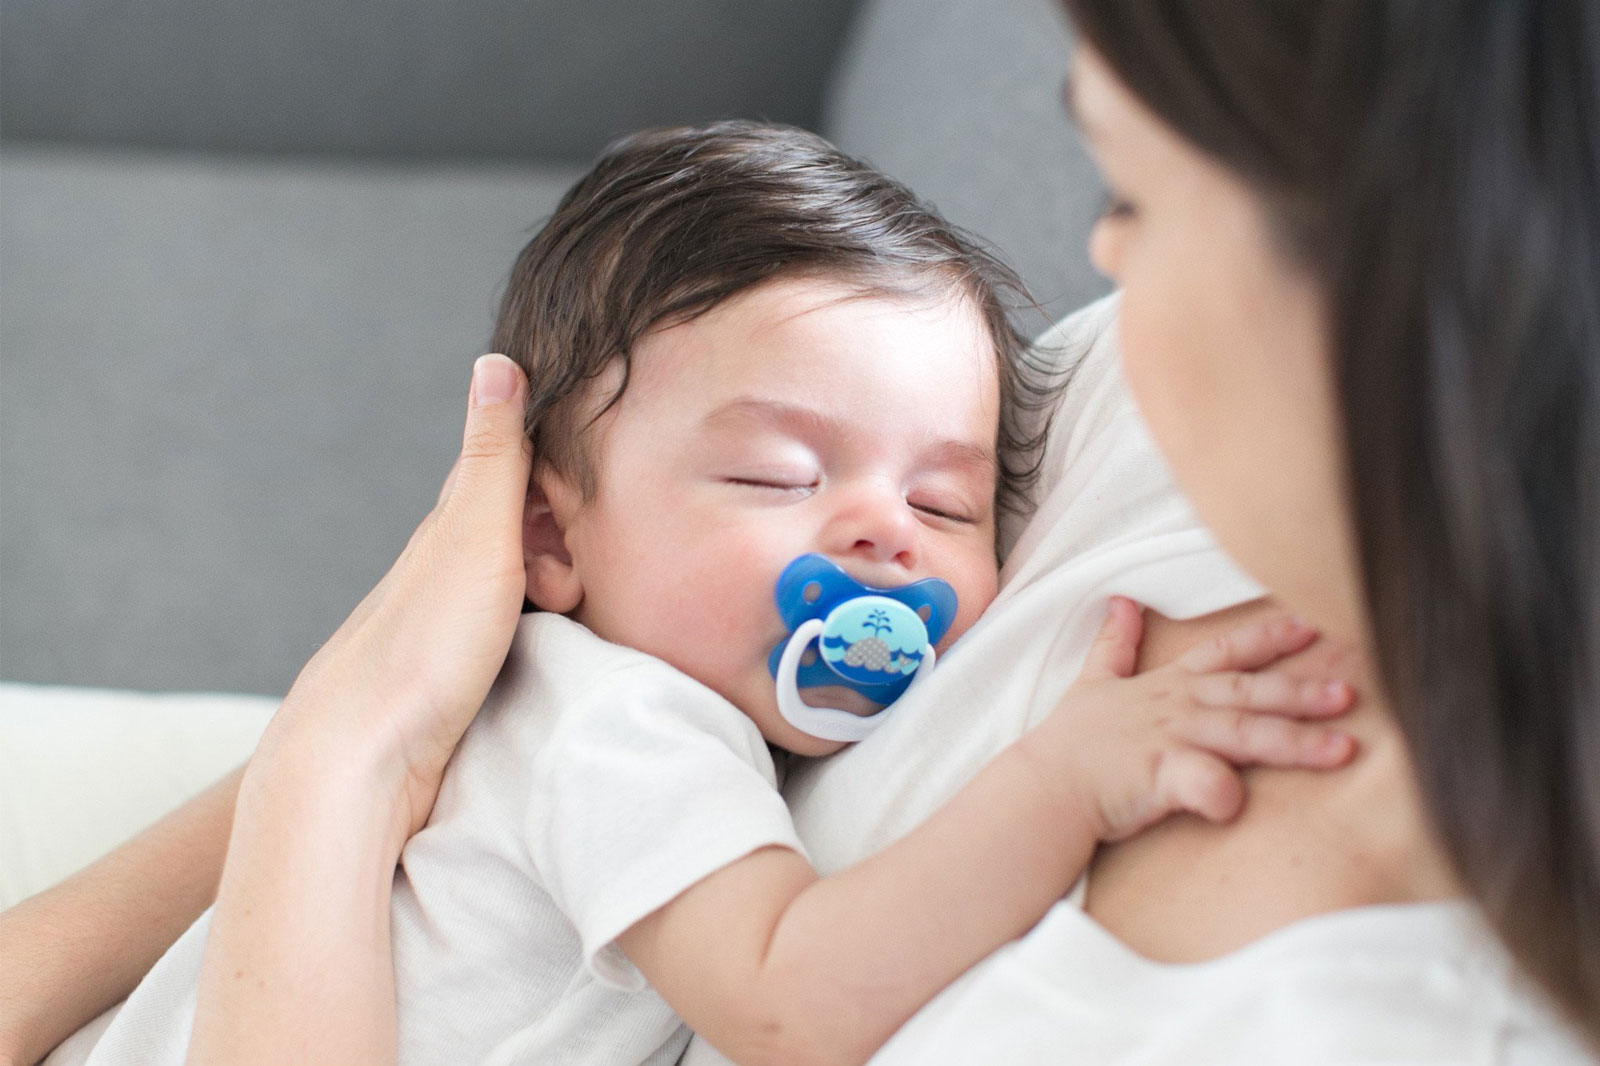 Mother Holding Her Baby With Pacifier   #MomLife: 25 Things Only New Moms Can Fully Understand